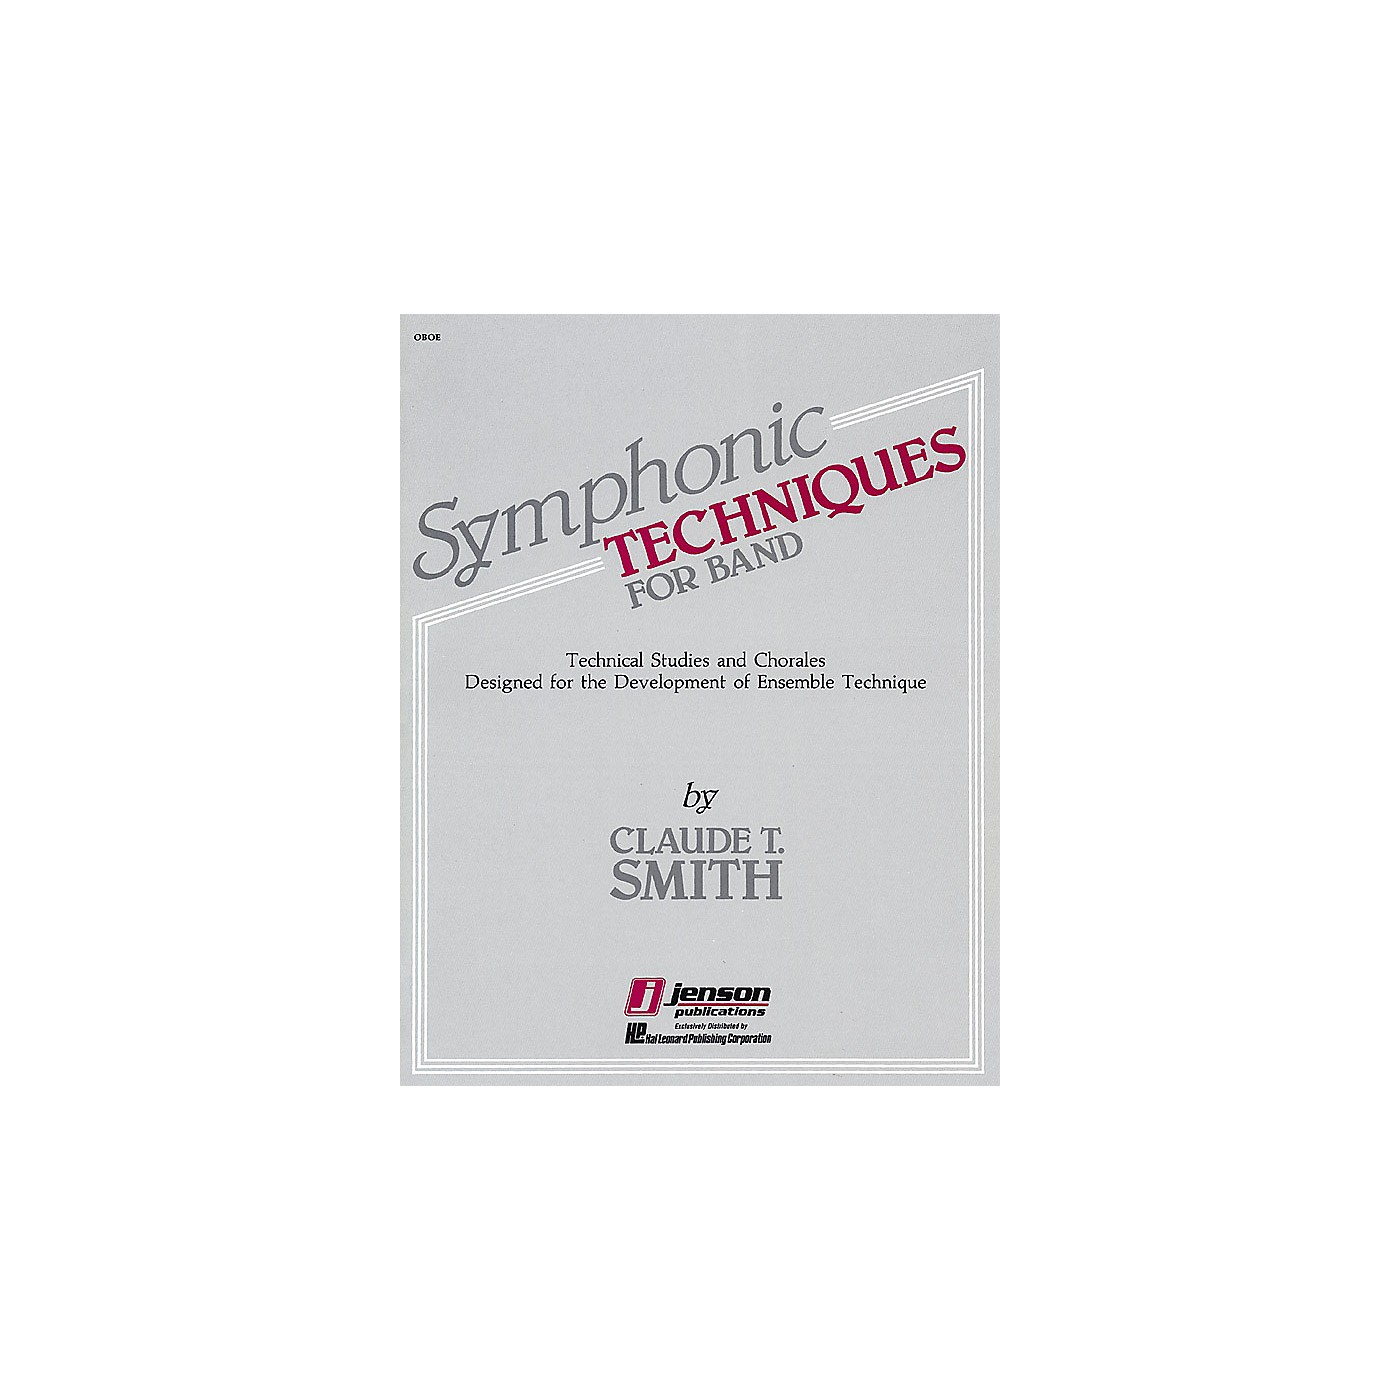 Hal Leonard Symphonic Techniques for Band (Oboe) Concert Band Level 2-3 Composed by Claude T. Smith thumbnail